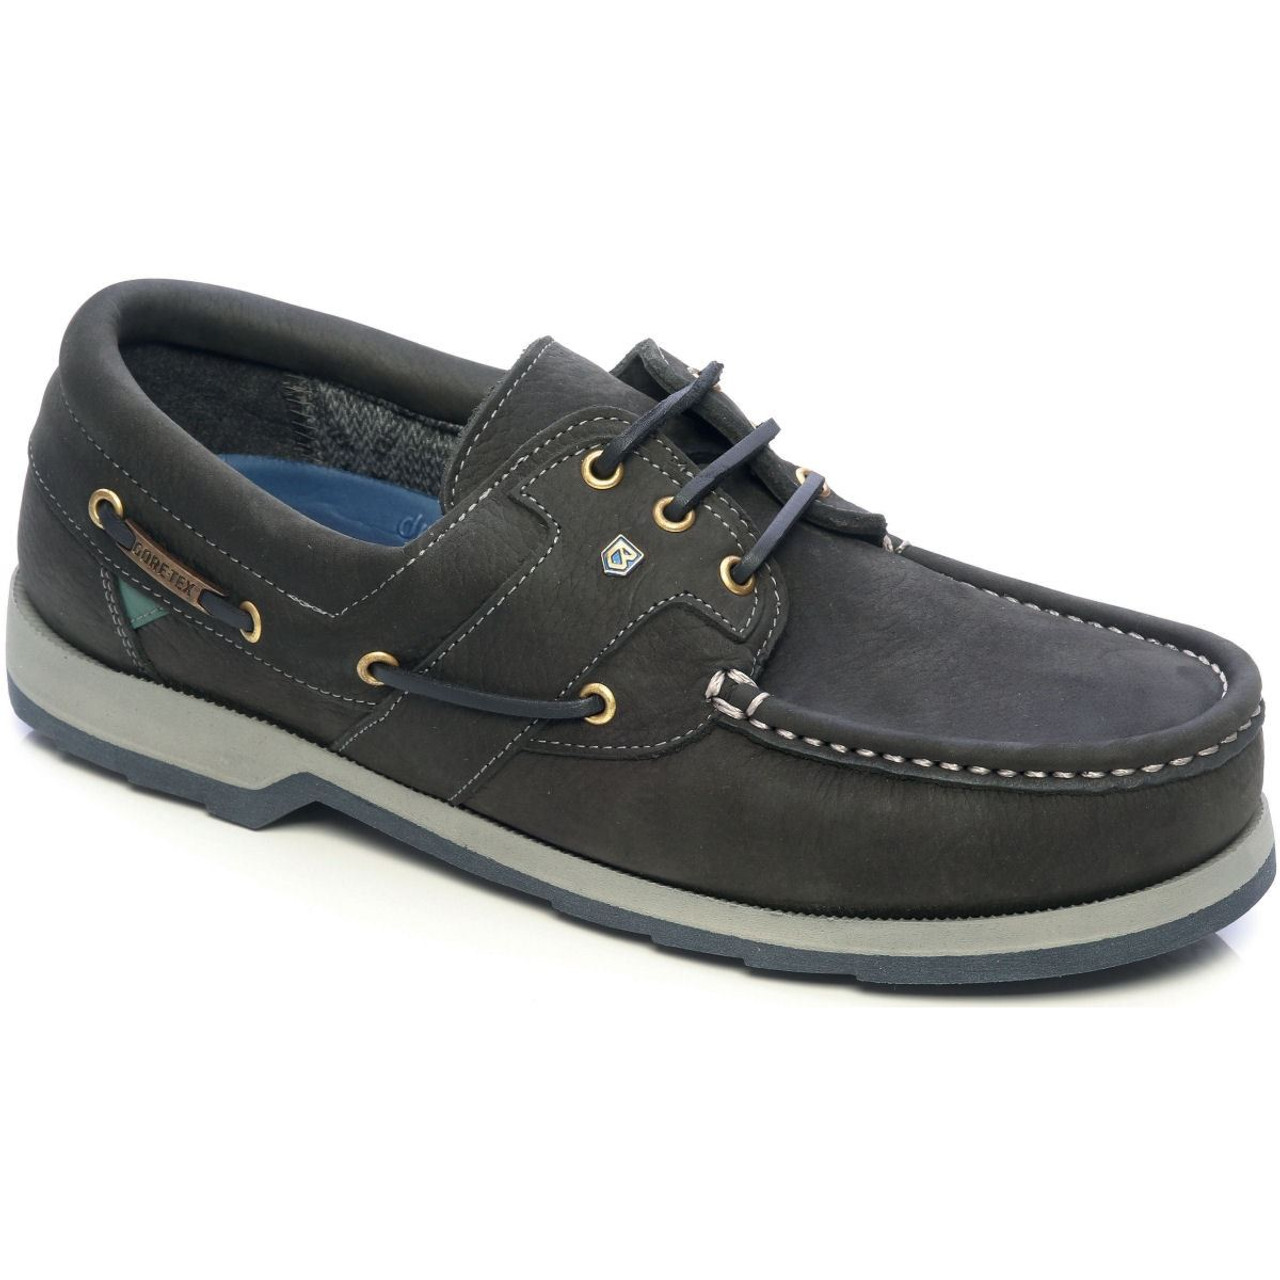 Dubarry Clipper Gore Tex Deck Shoes in Navy